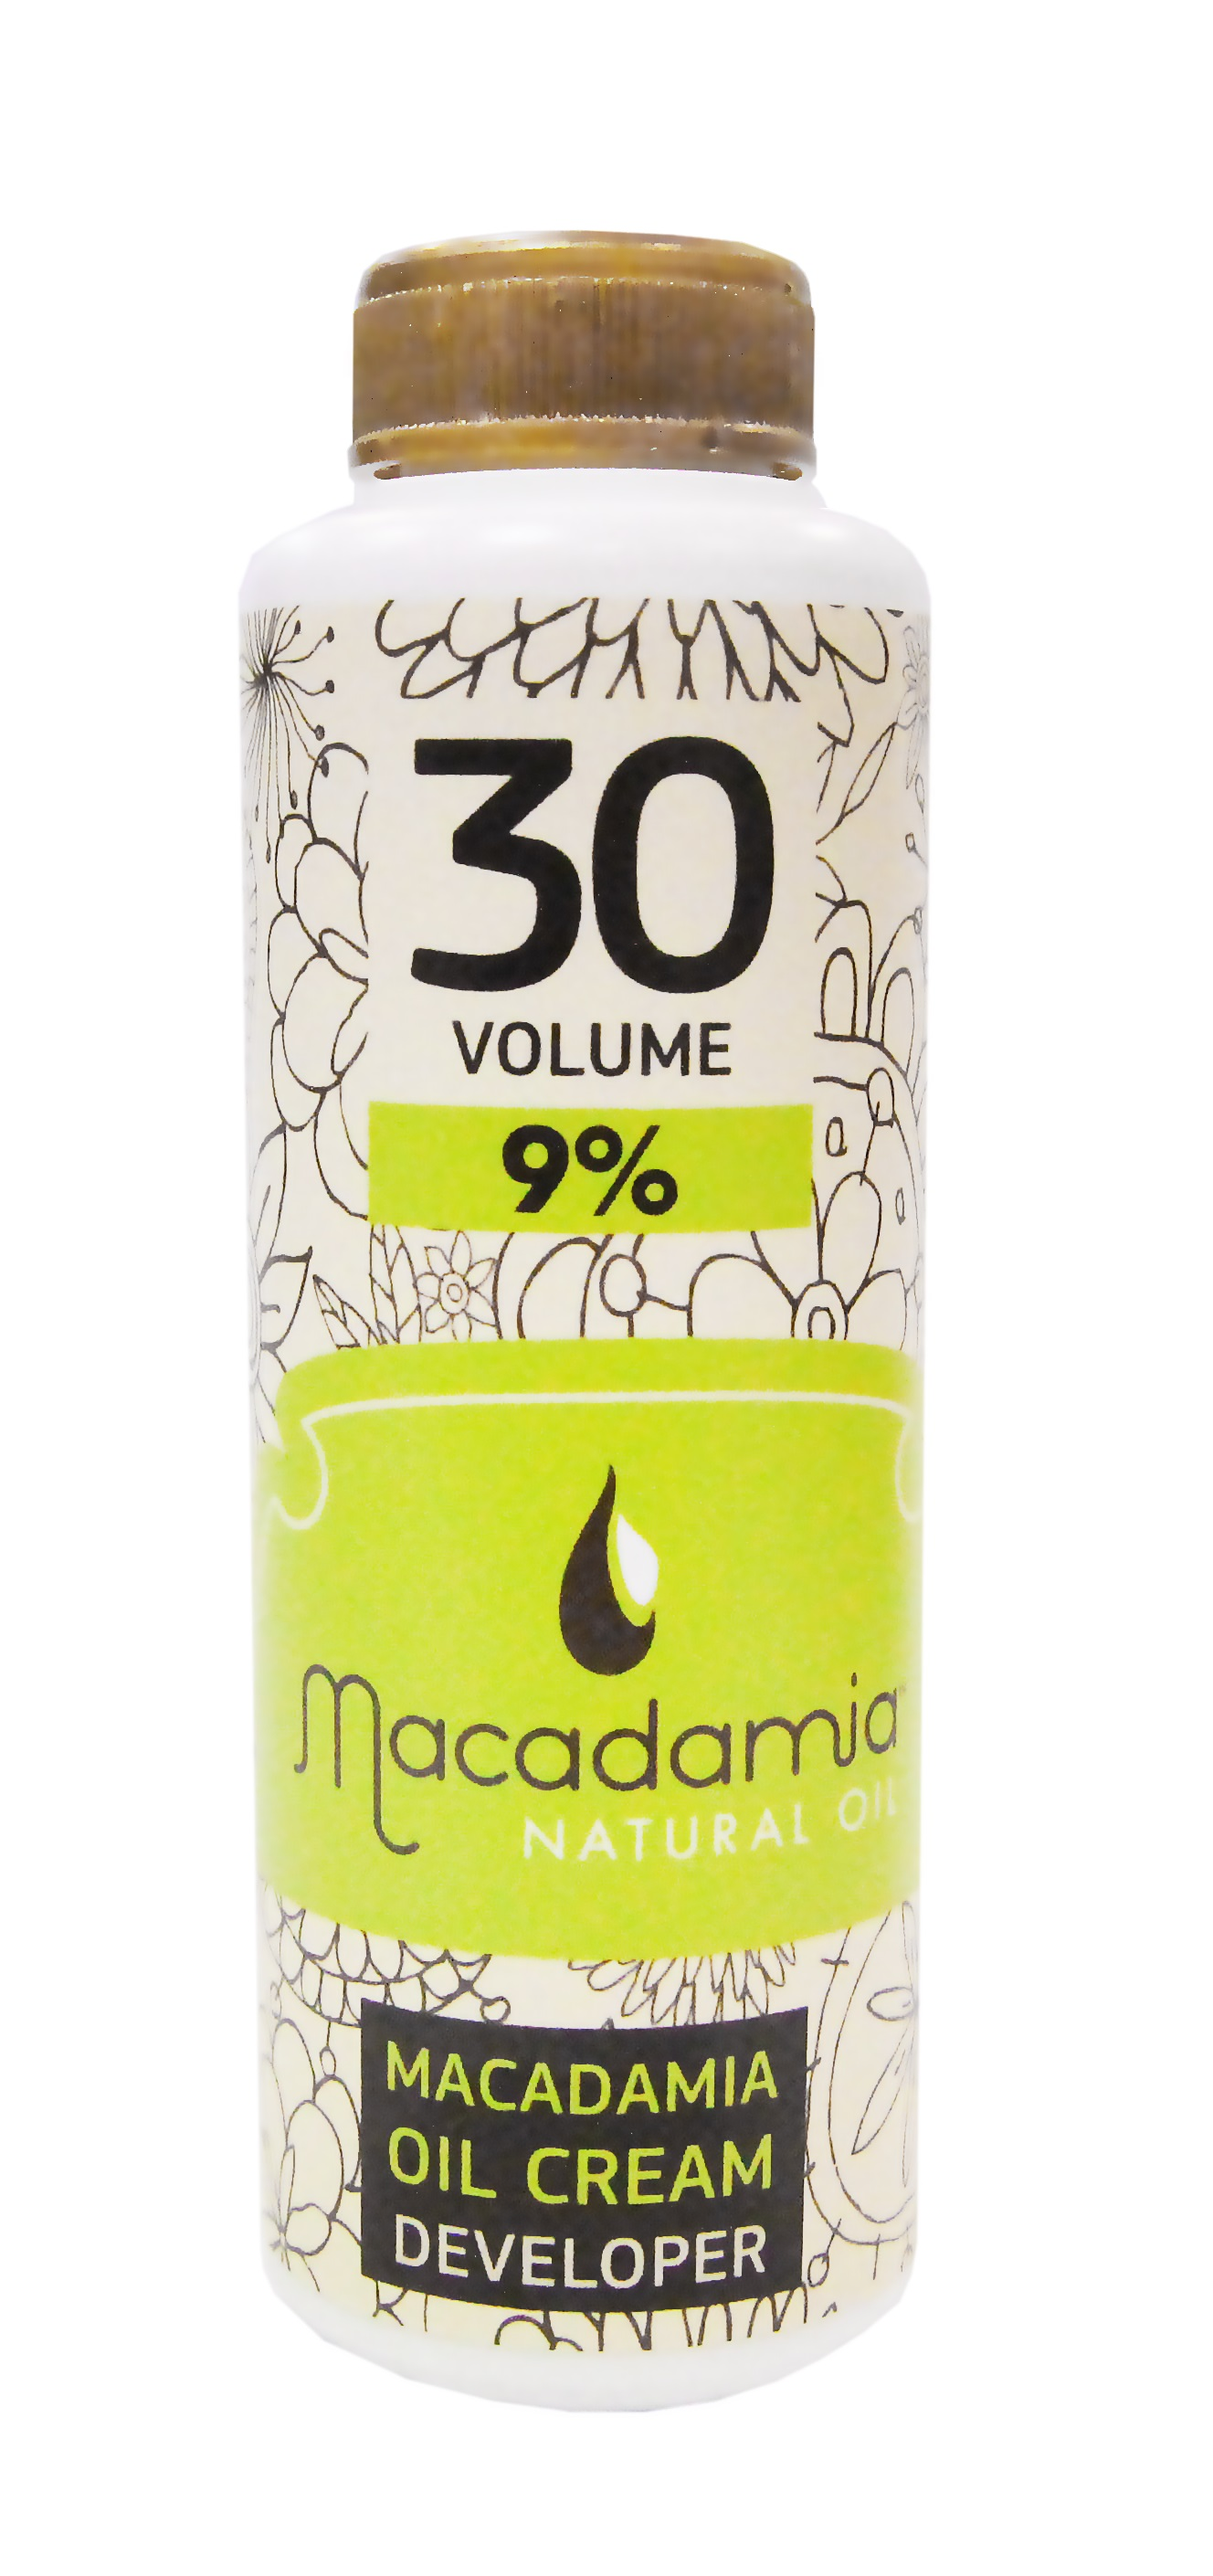 MACADAMIA Natural Oil Окислитель 9% (30 vol) / Cream Color 100 мл macadamia natural oil несмываемый 100 мл